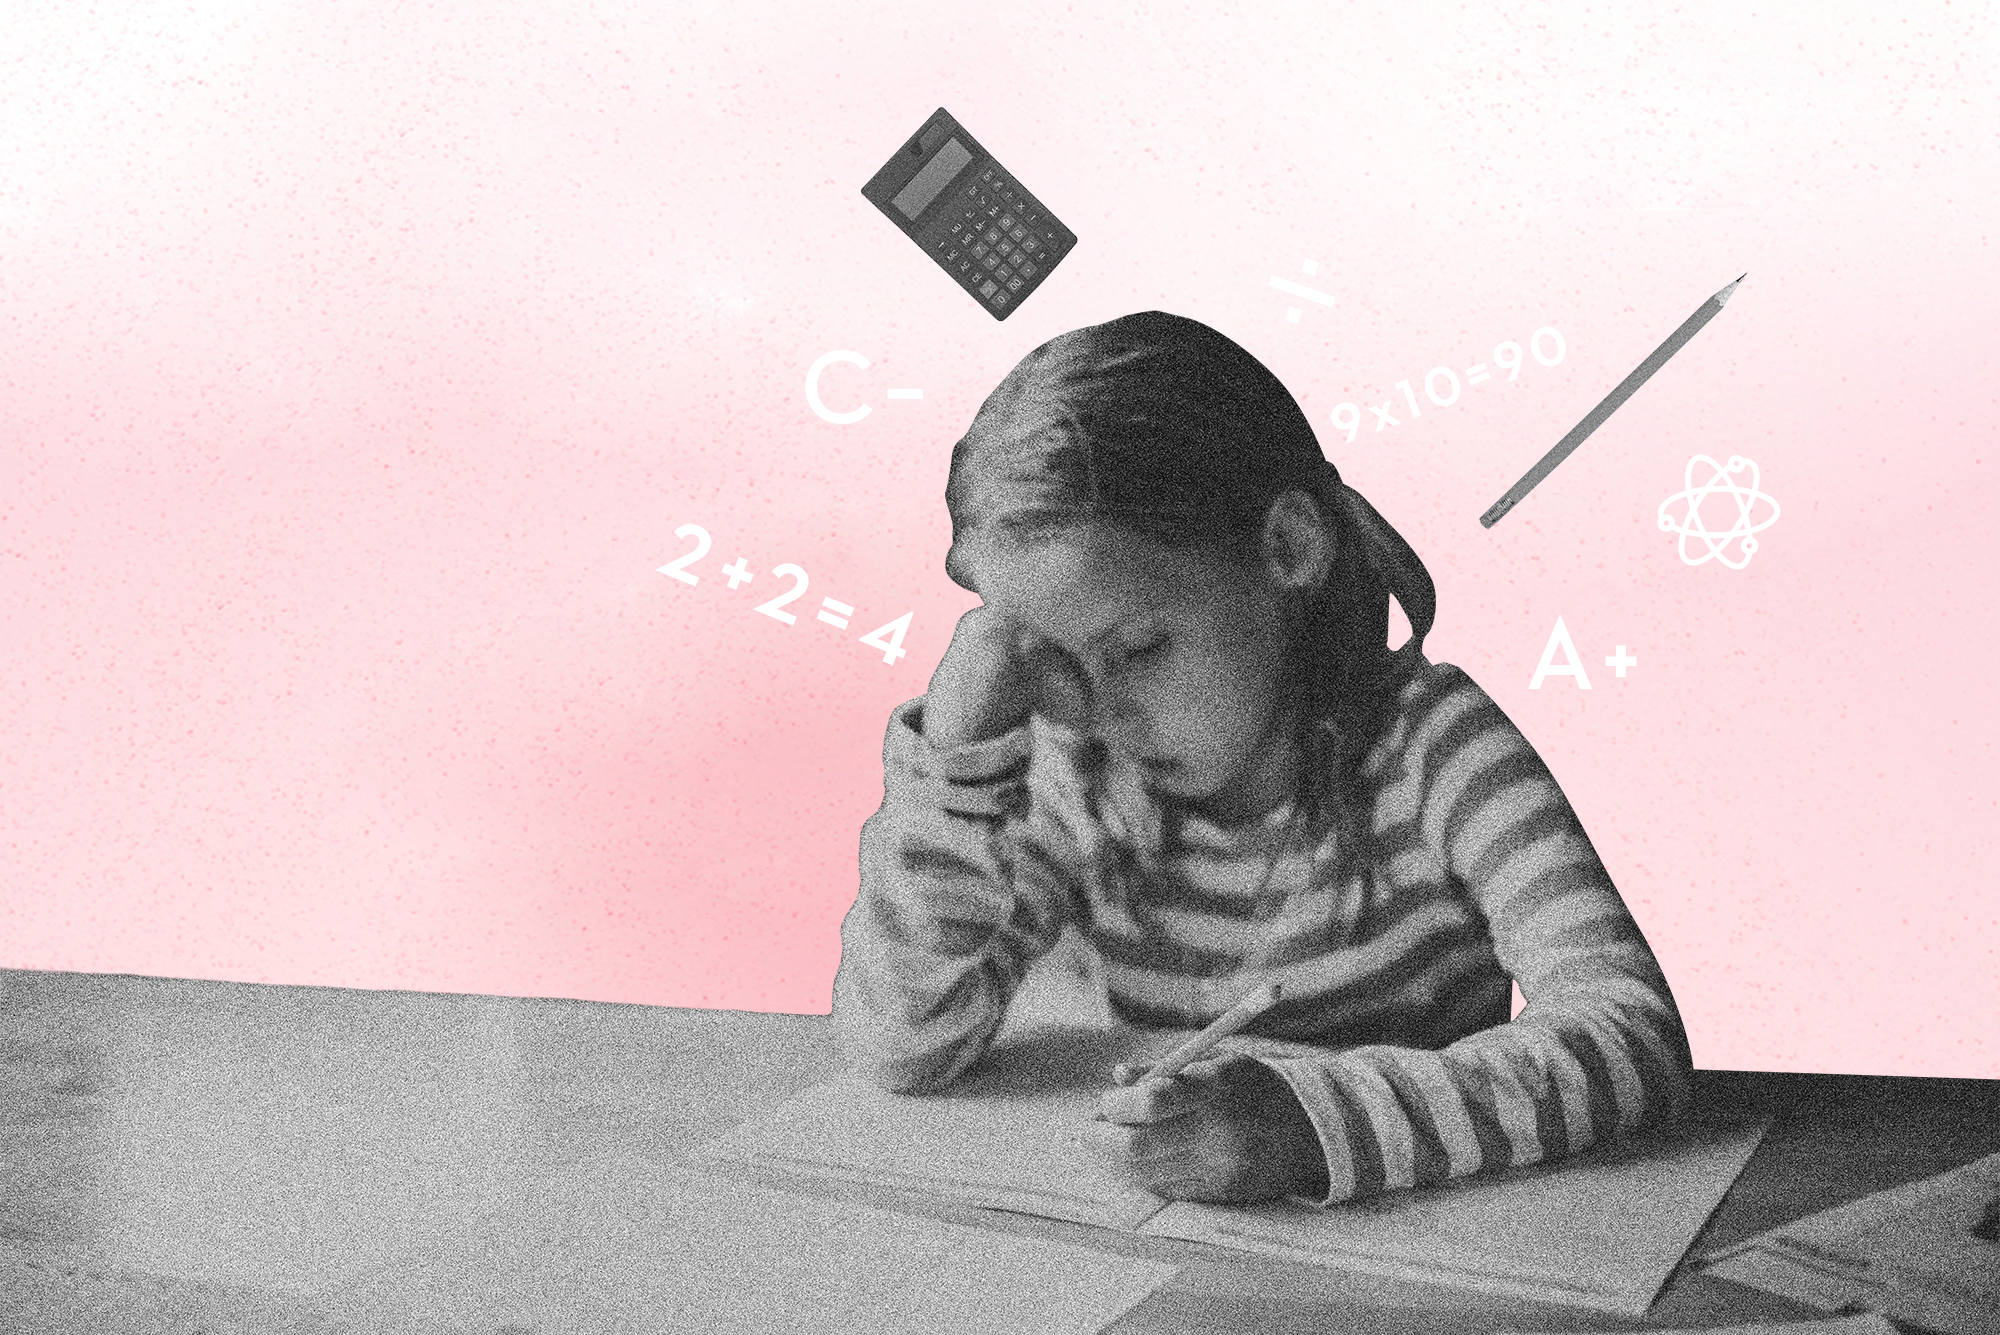 Studies Show Homework Isn't Beneficial in Elementary School, so Why Does It Exist?